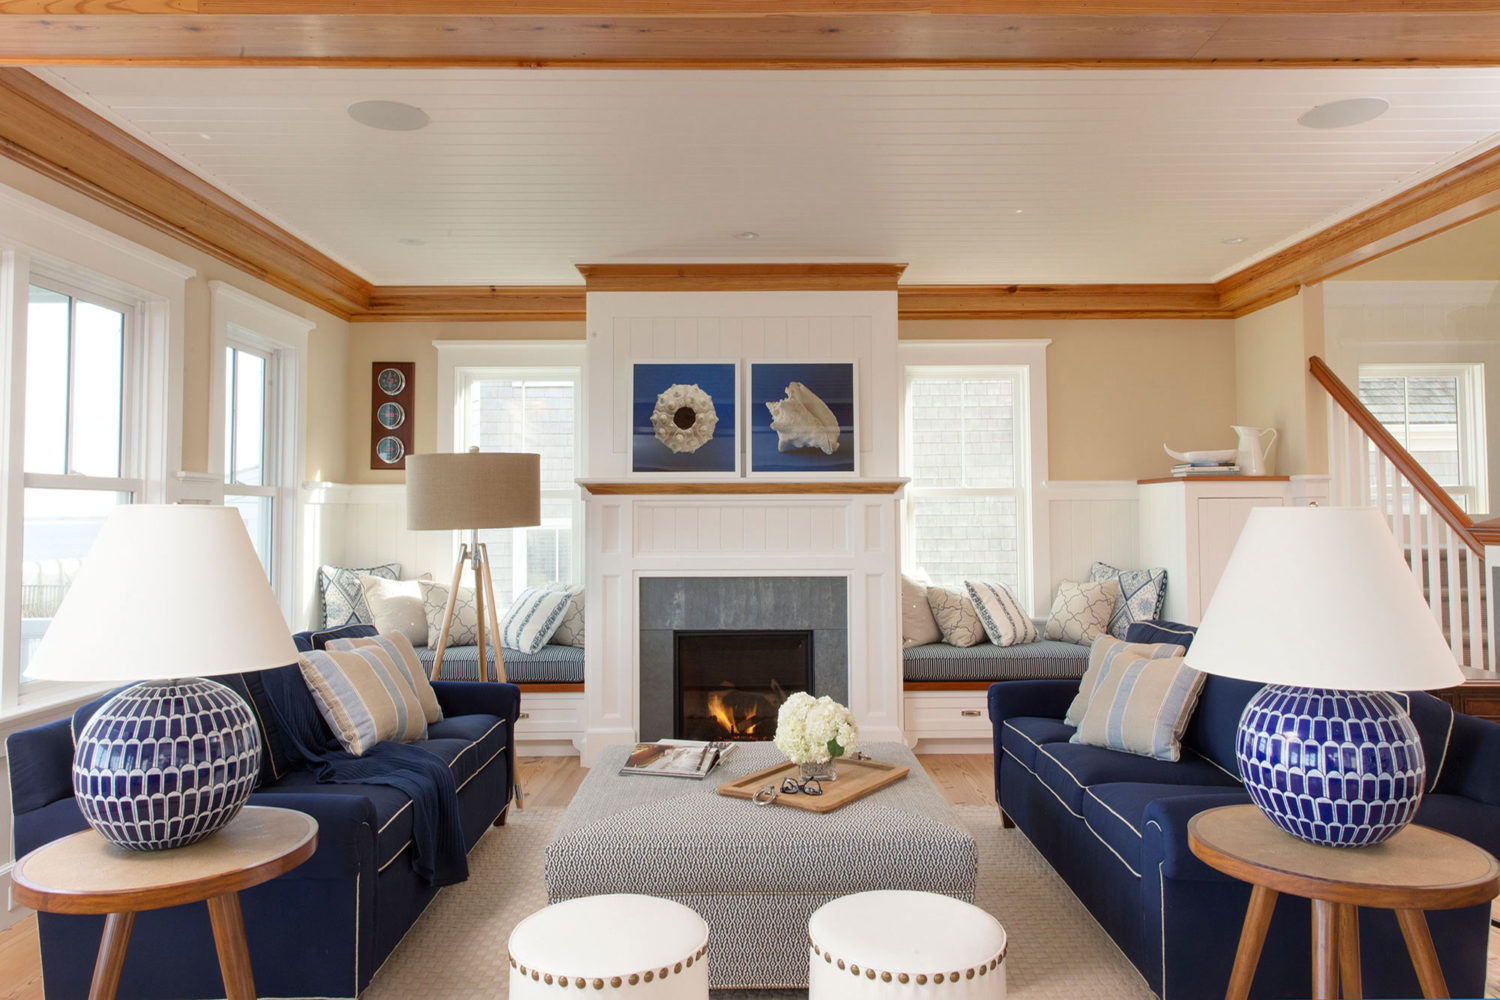 Nantucket Interior Design By Carolyn Thayer Interiors On Nantucket